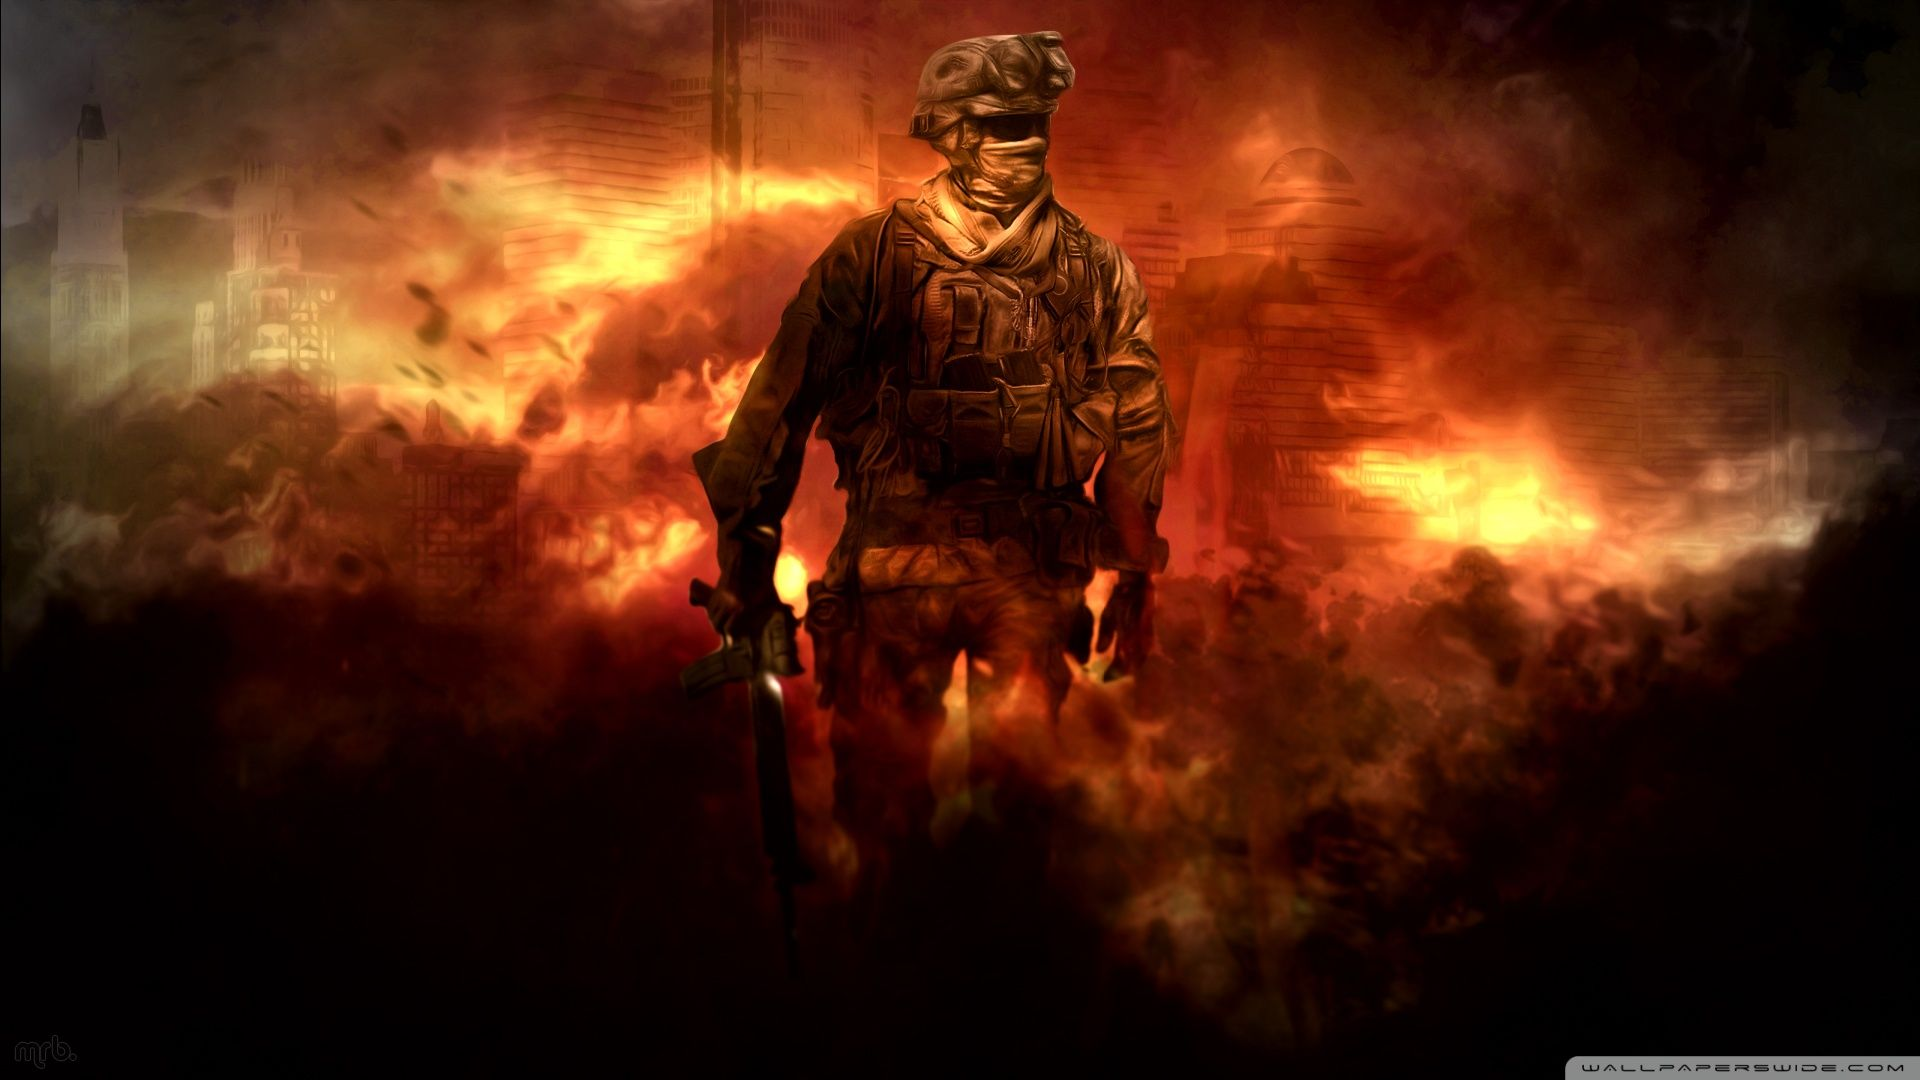 wallpaper full hd 1920x1080 call of duty